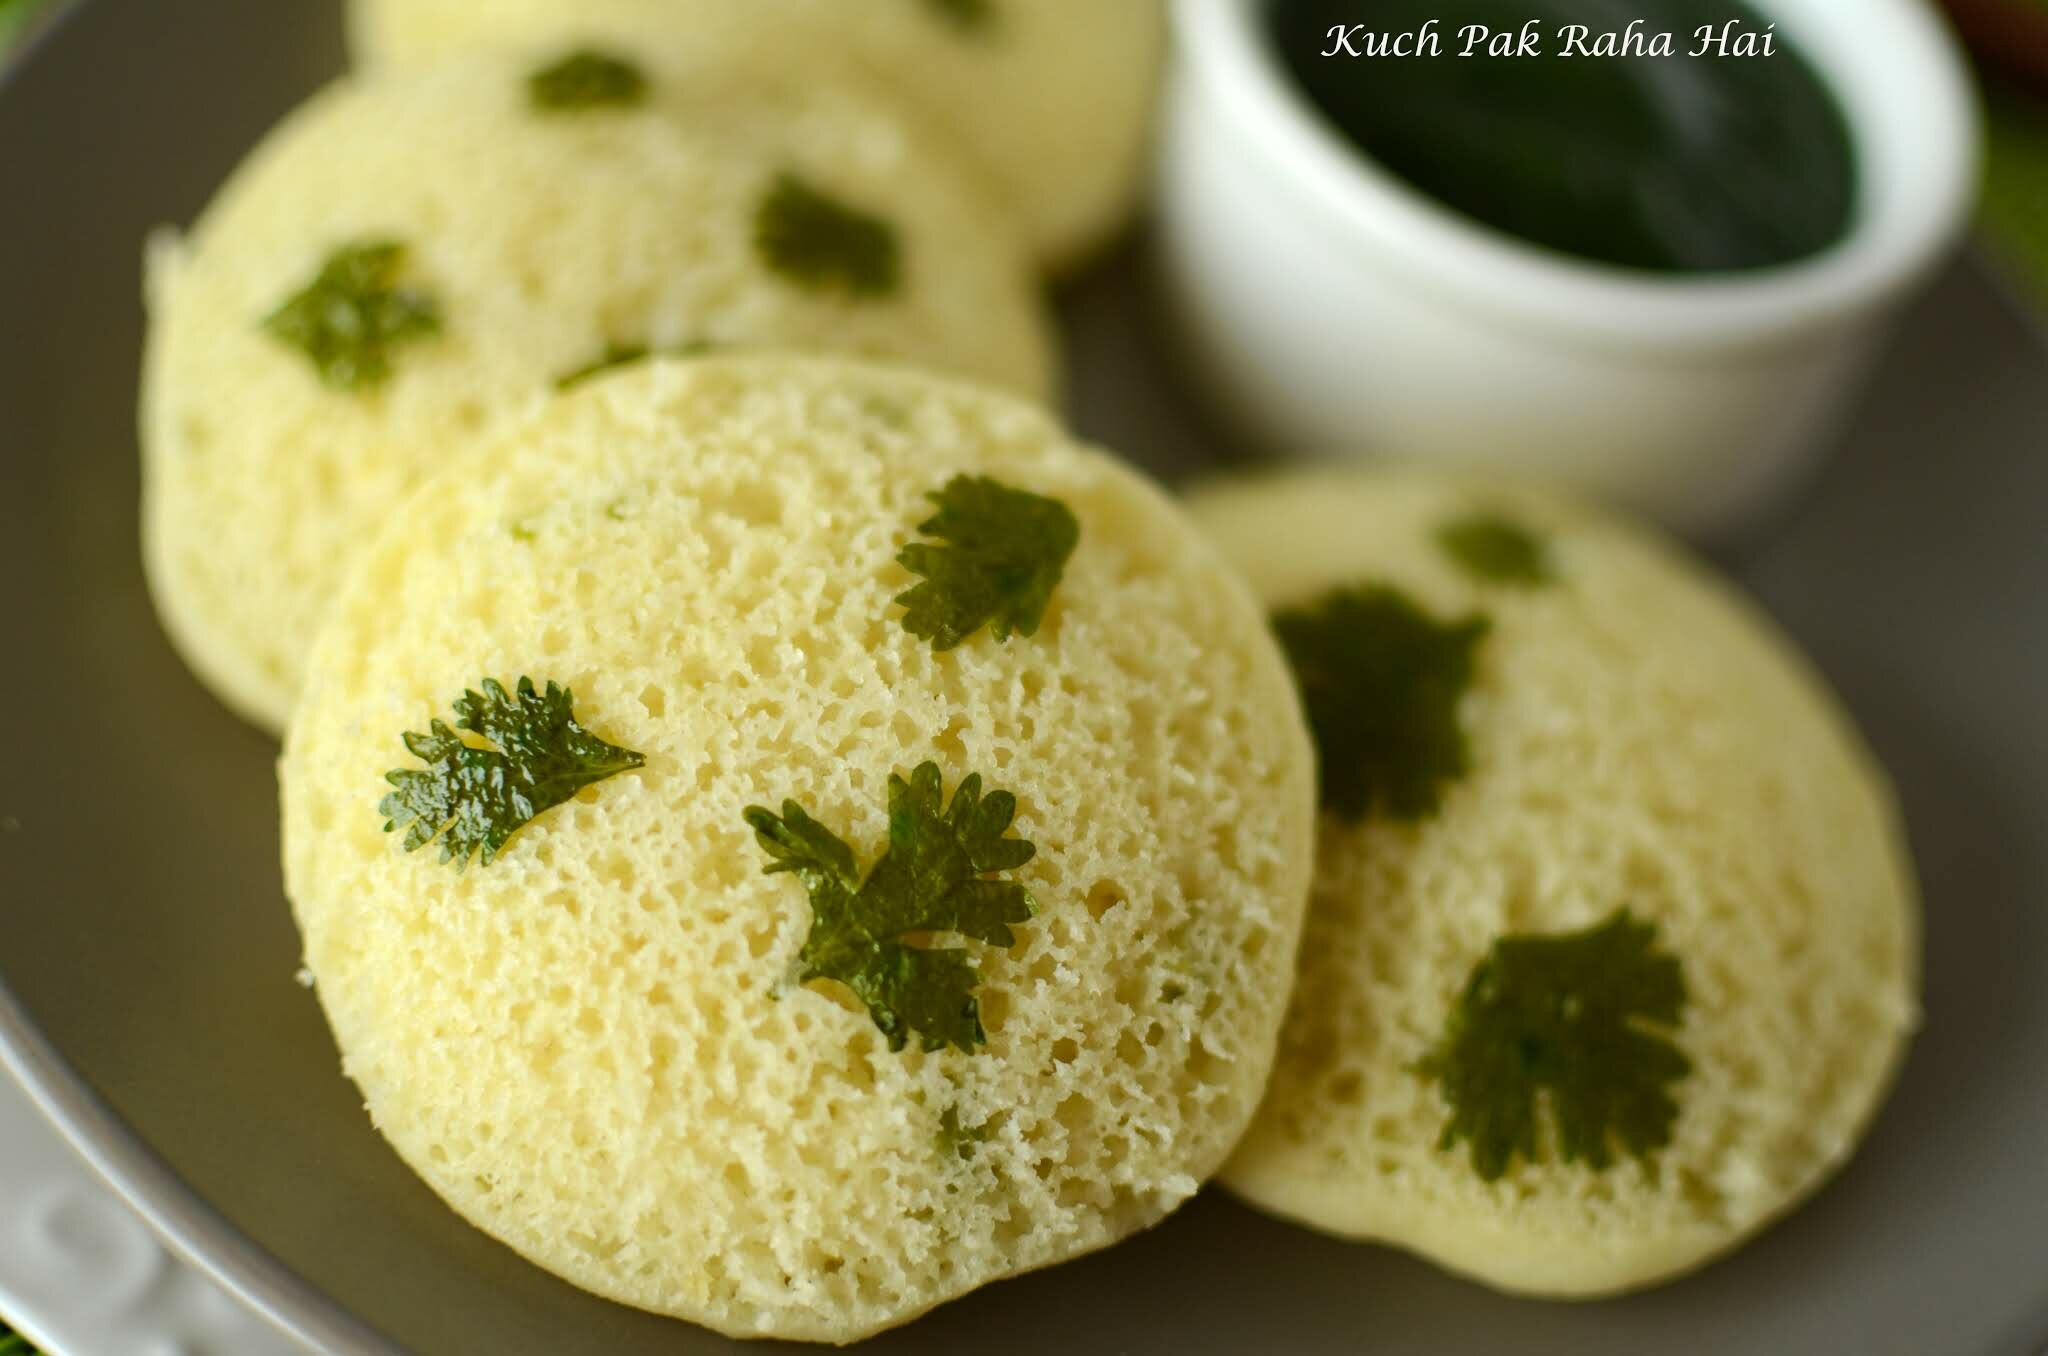 Instant moong dal idli recipe without rice & no fermentation